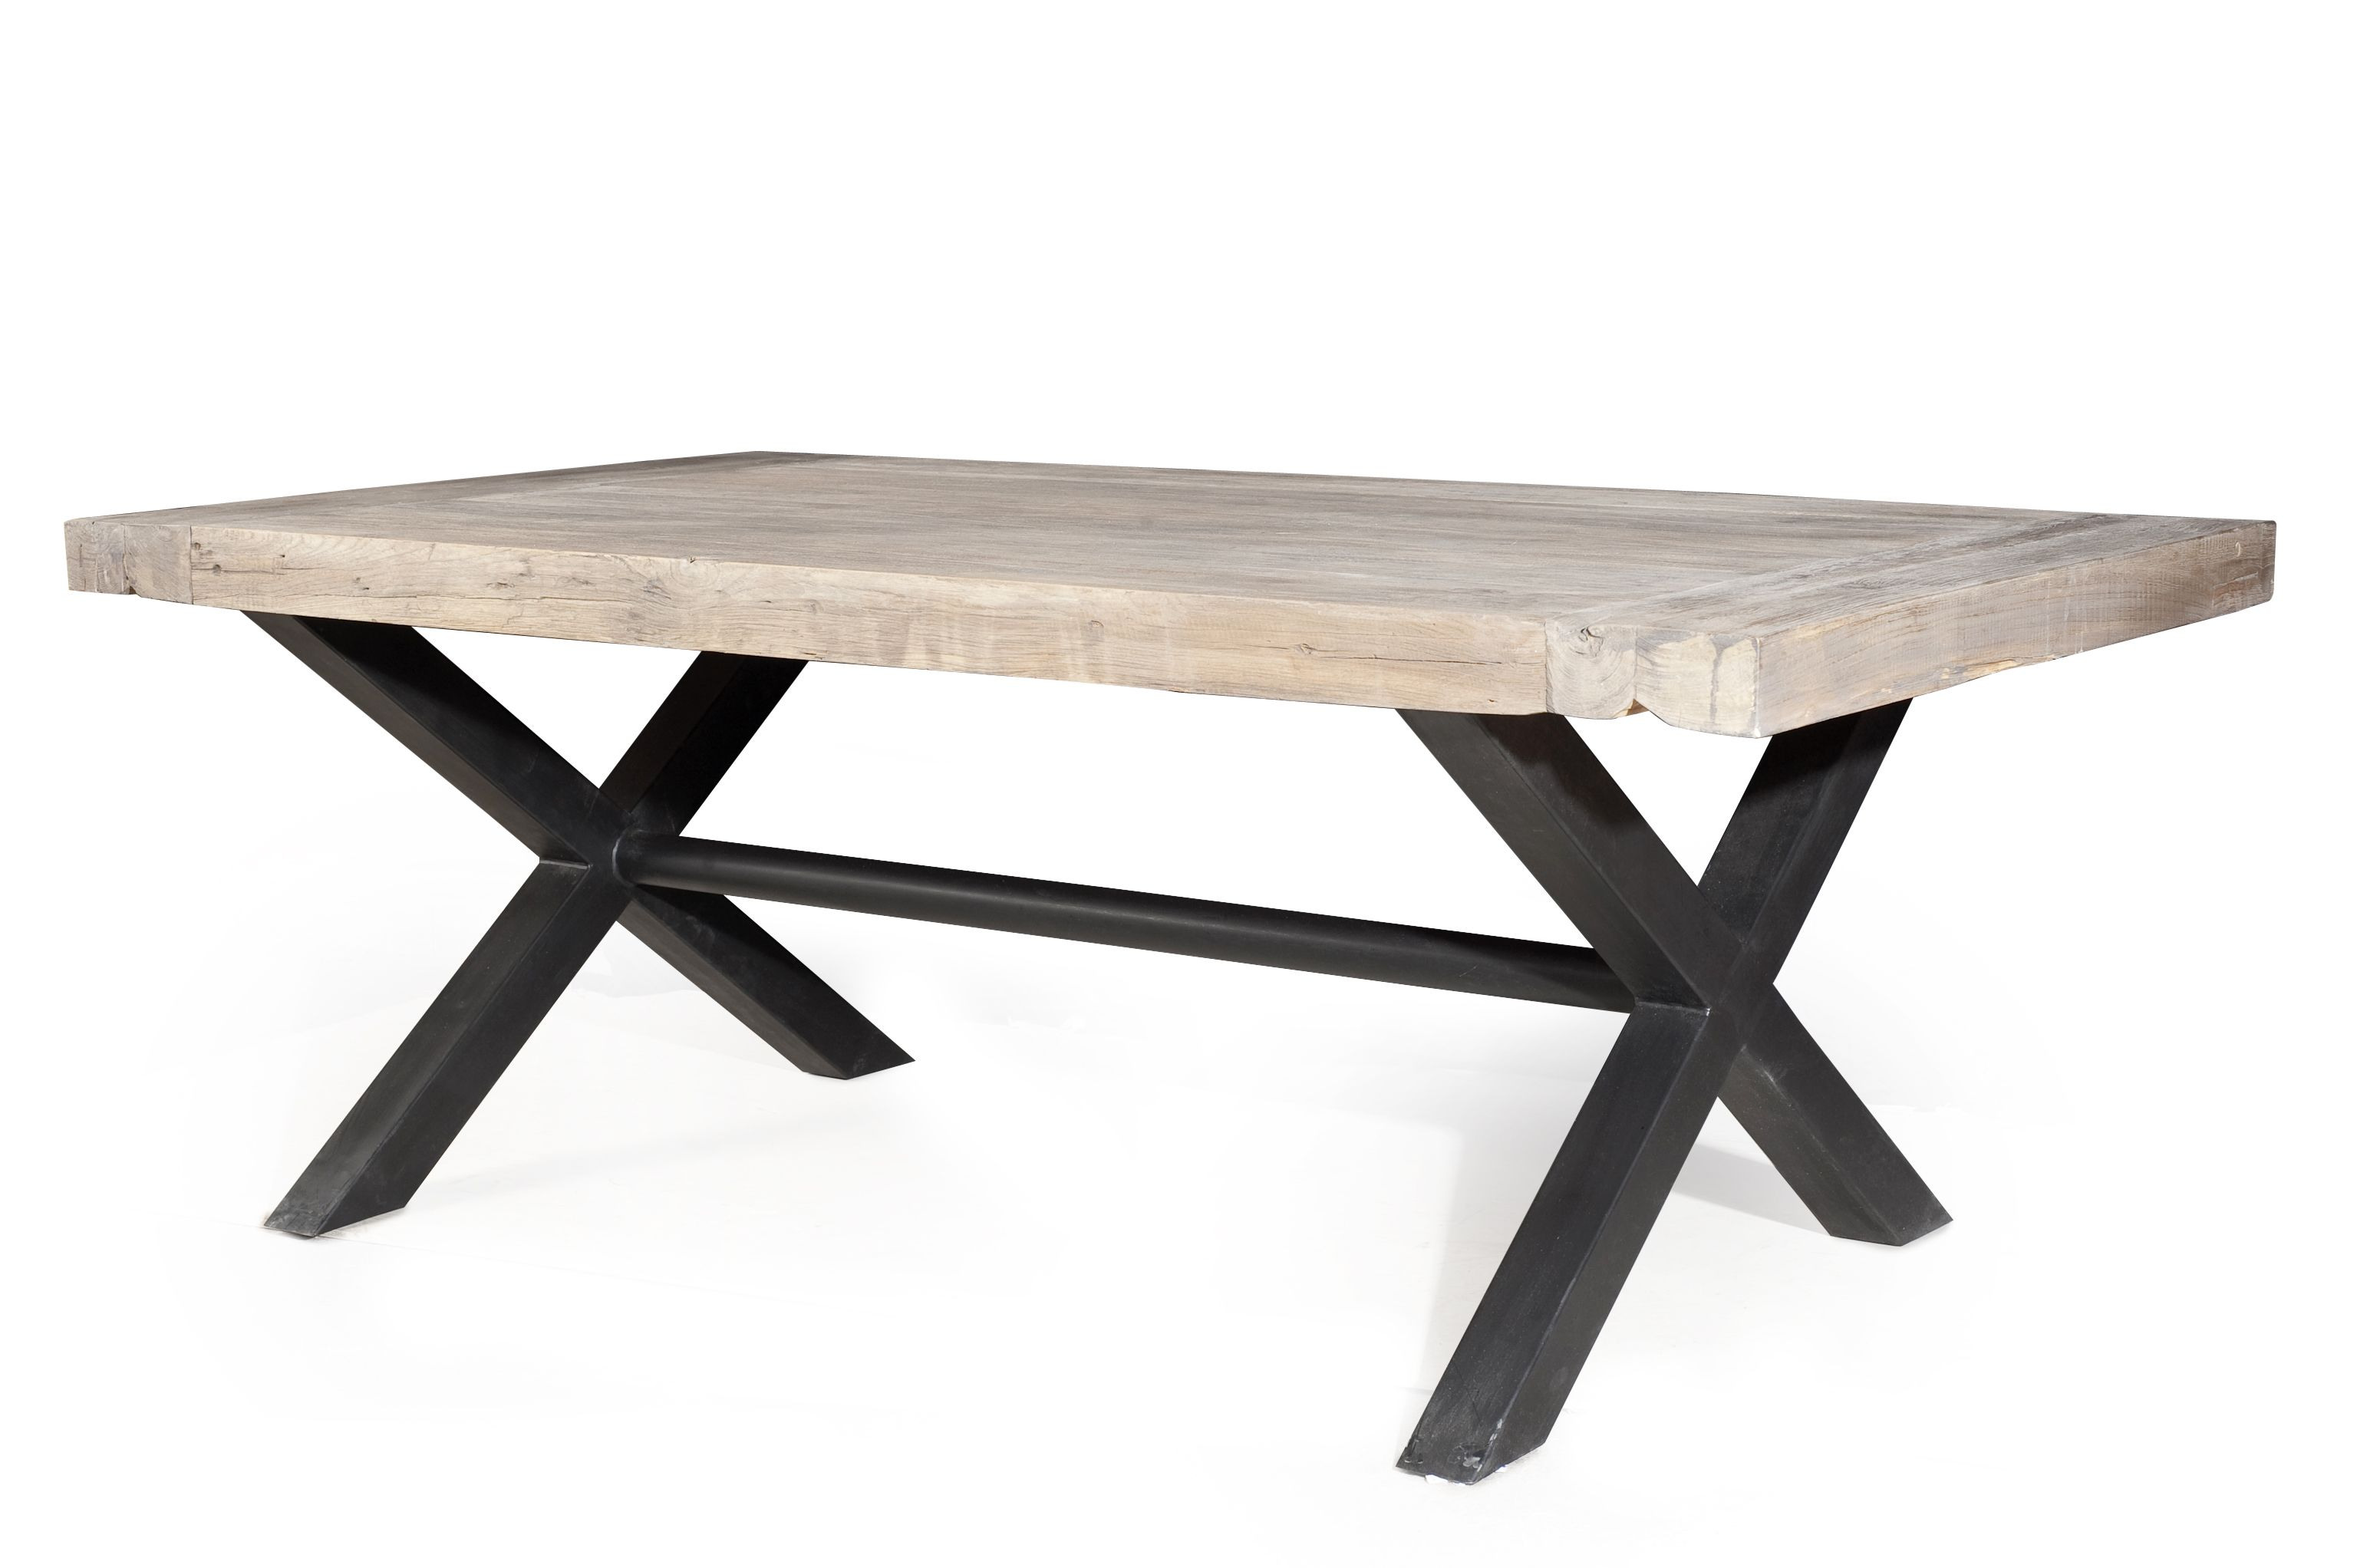 Comparatif table a manger fer forge et bois maison for Table bois pied fer forge